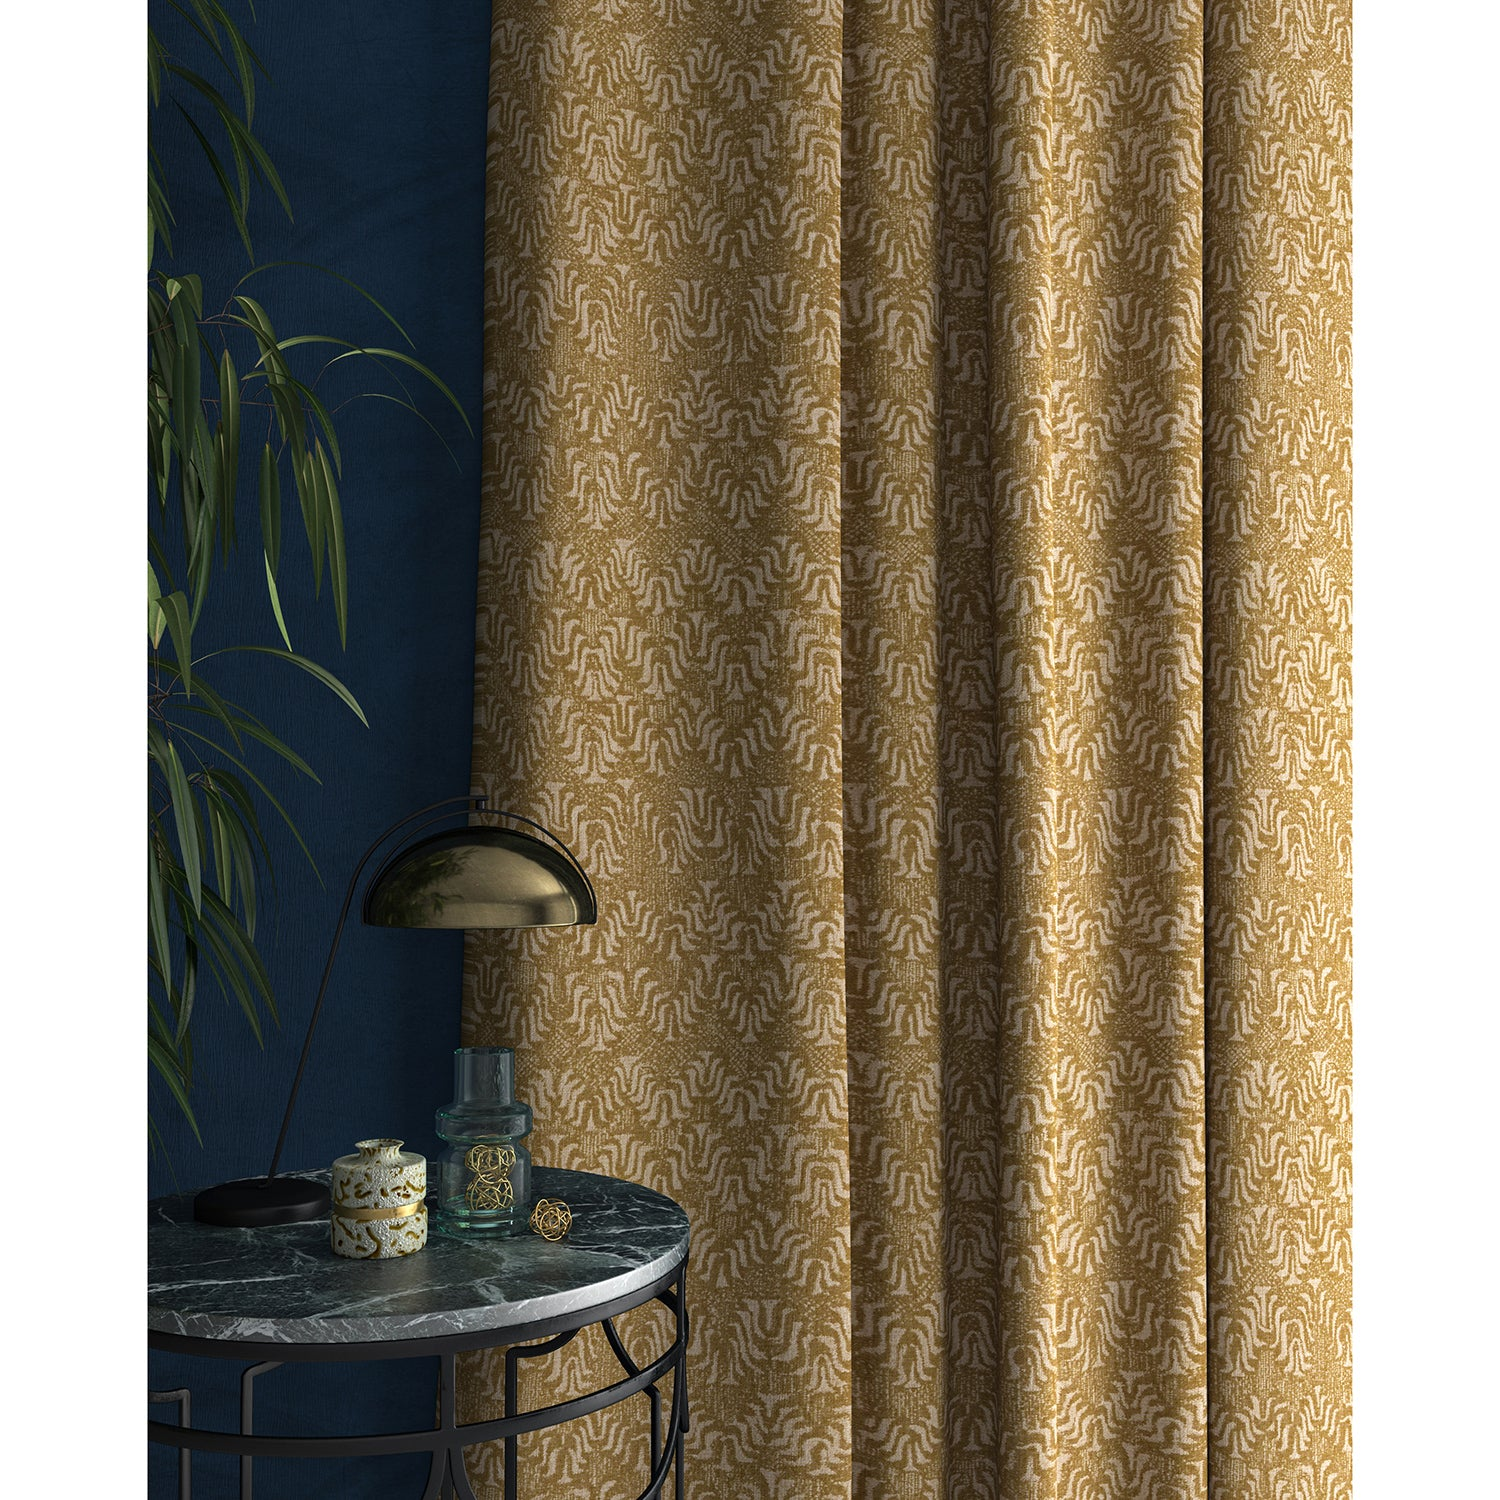 Curtain in a jacquard weave fabric in yellow and neutral colours